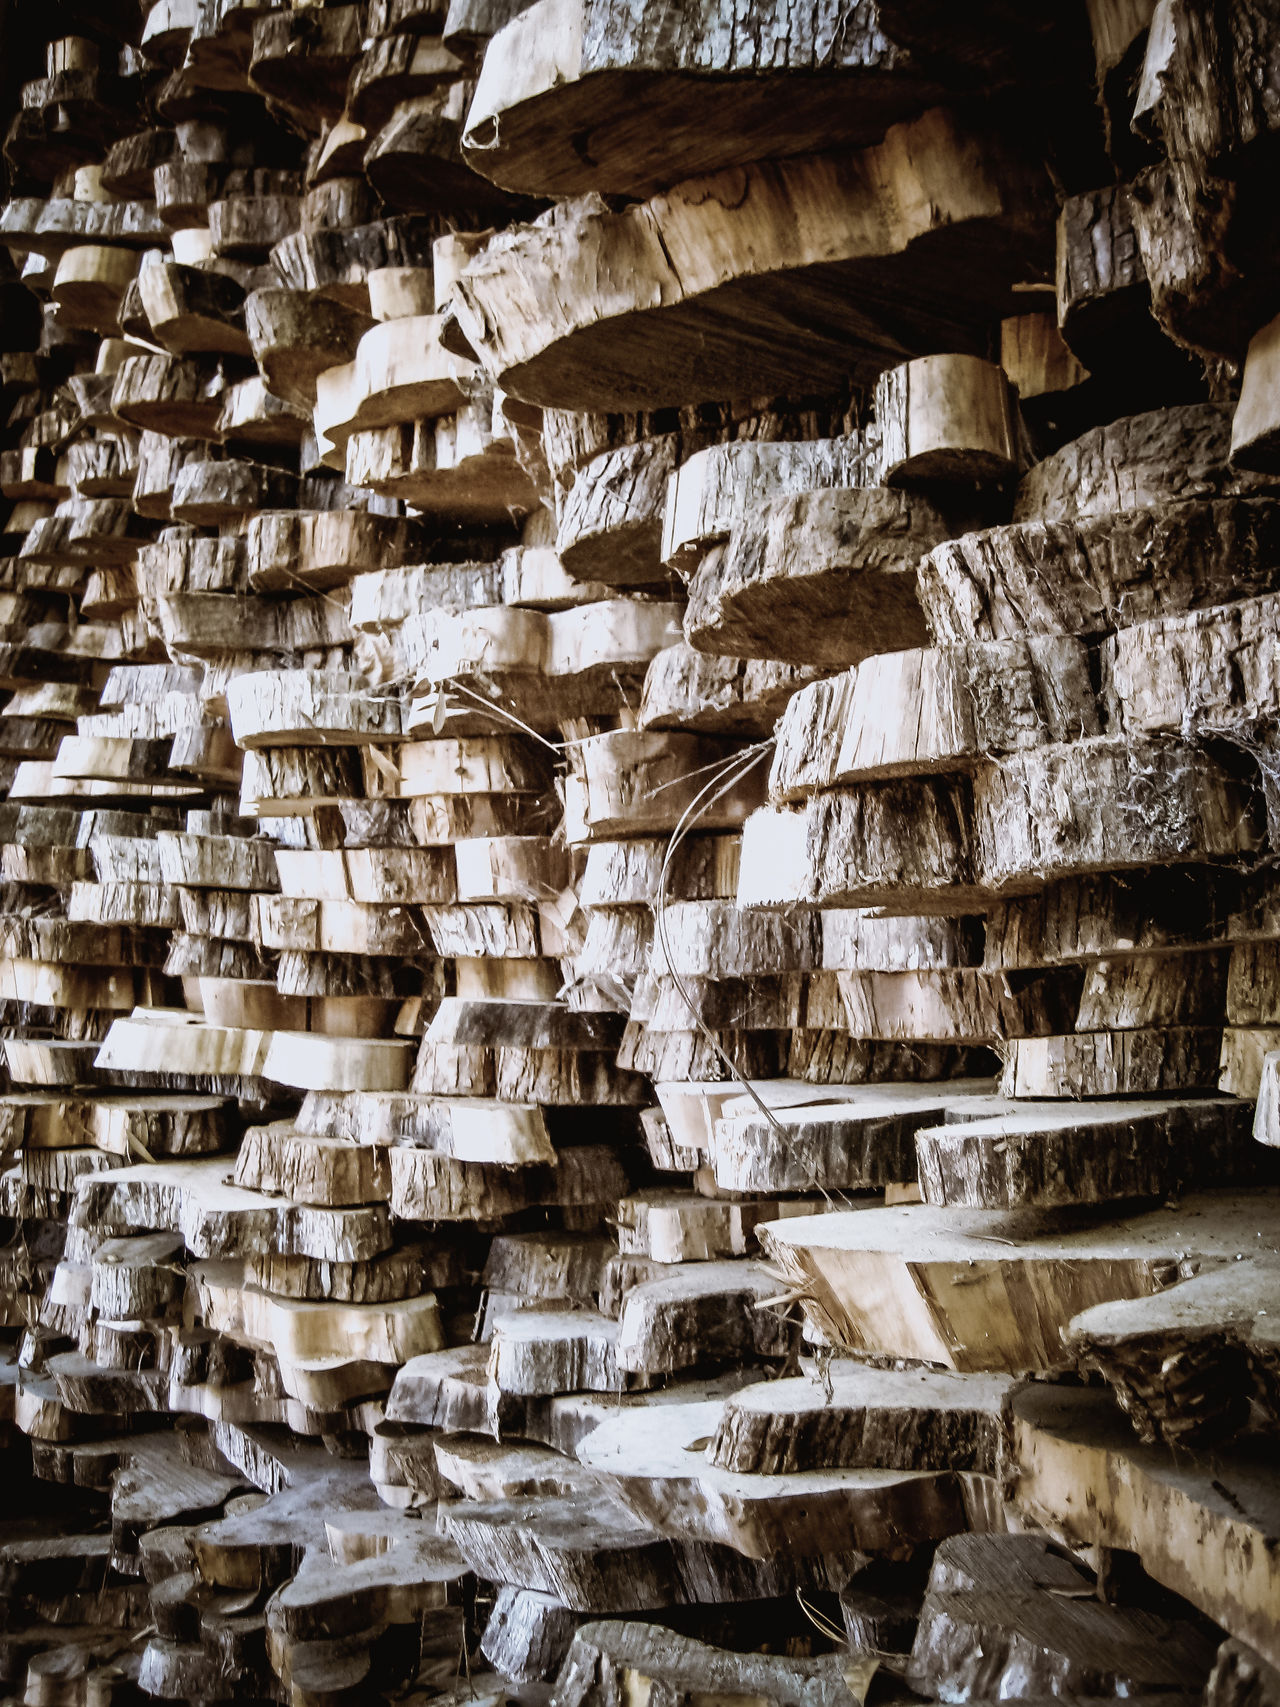 Stacks of natural live-edge Cypress tree rounds awaiting creation into furniture, crafts, and artistic endeavors. Abstract Backgrounds Brown Contrast Cypress Full Frame Large Group Of Objects Live Edge Lumber Natural Natural Pattern Nature No People Pattern Stack Texture Textured  Trees Weathered Wood Wood